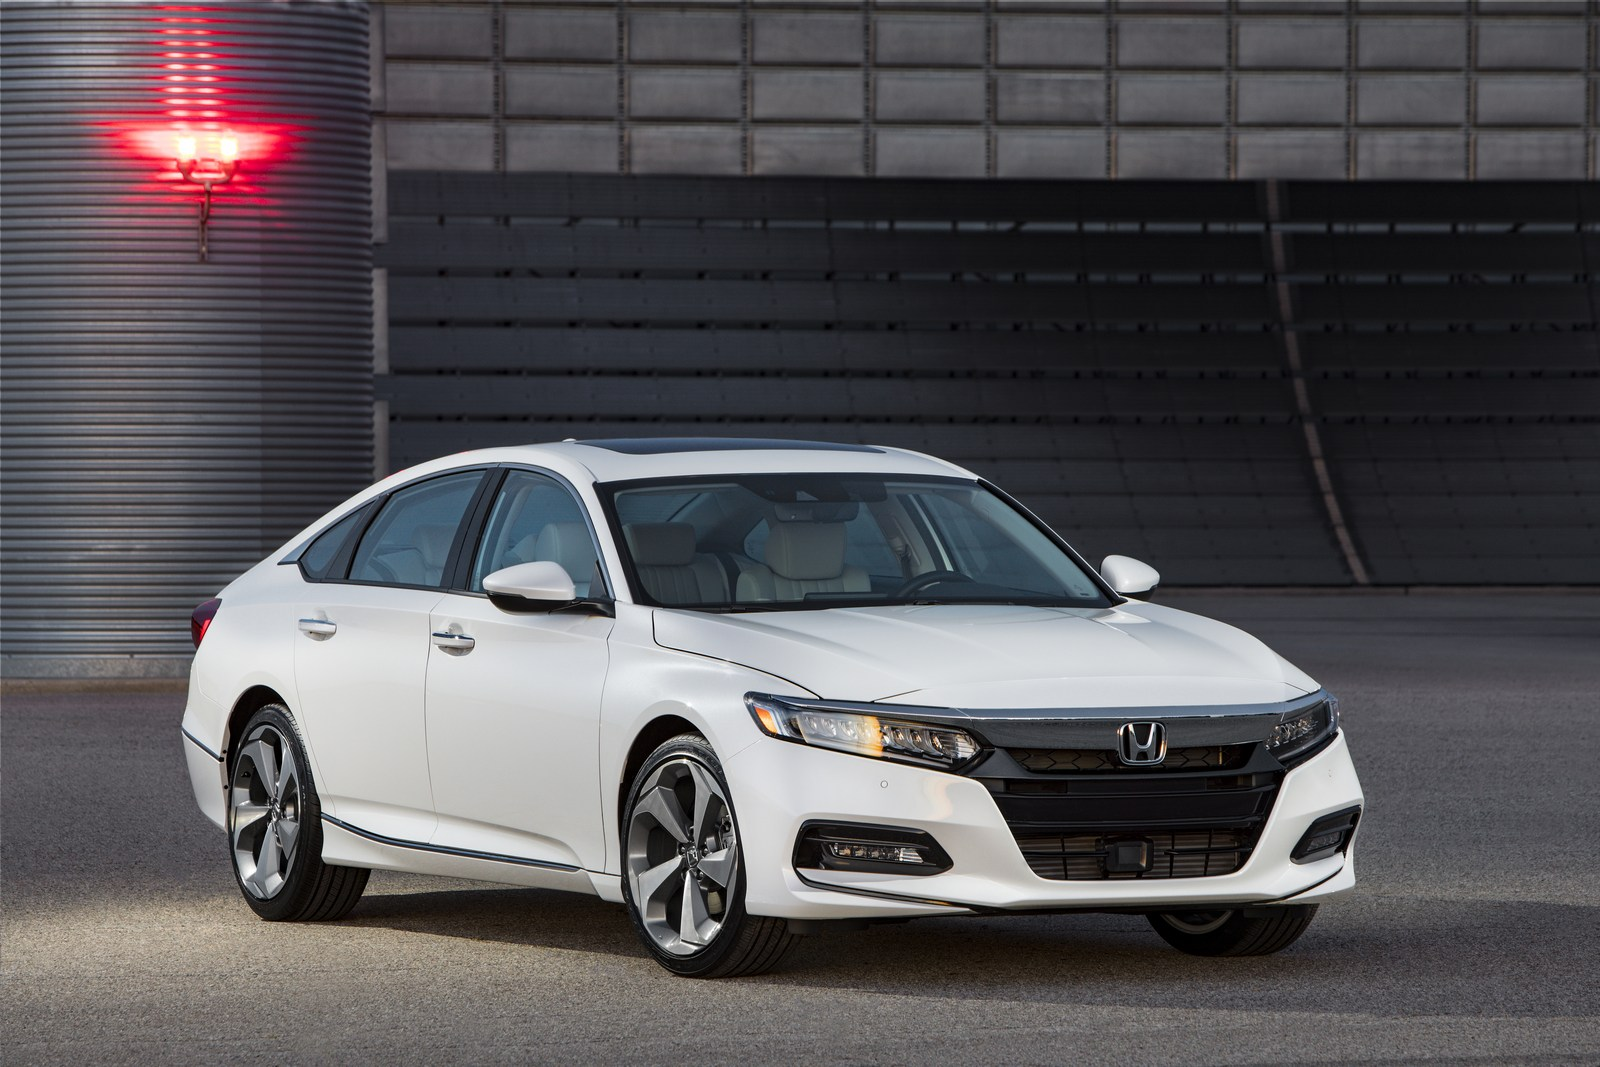 2018 Honda Accord Hybrid Fuel Economy EPA-rated At 47 MPG Combined ...